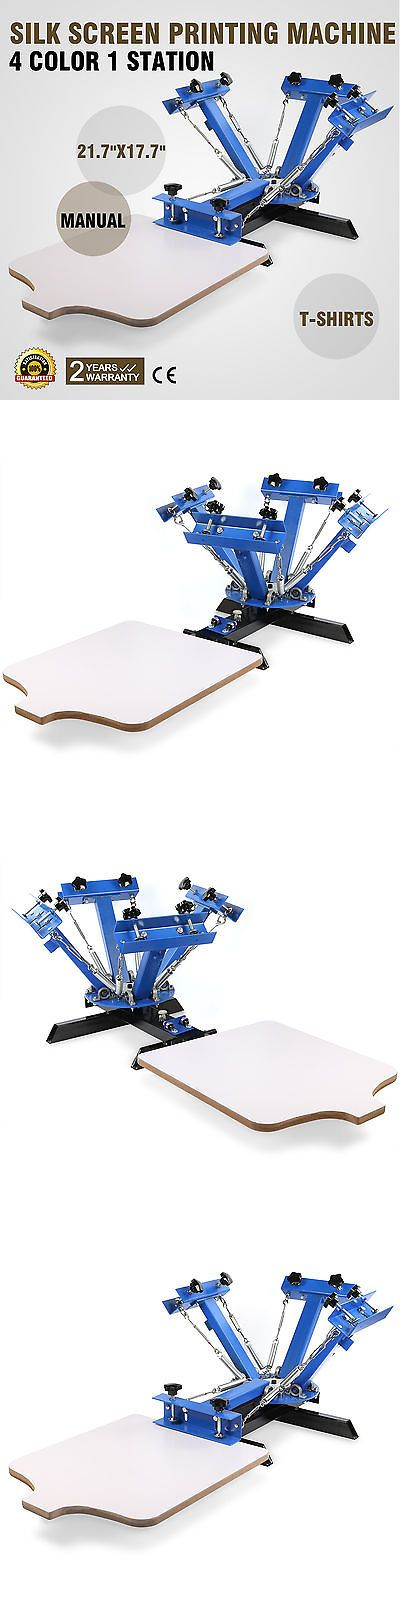 Screen Printing Sets and Kits 183116: 4 Color Screen Printing Press Machine Silk Screening Pressing Diy With 1 Station -> BUY IT NOW ONLY: $136.14 on eBay!